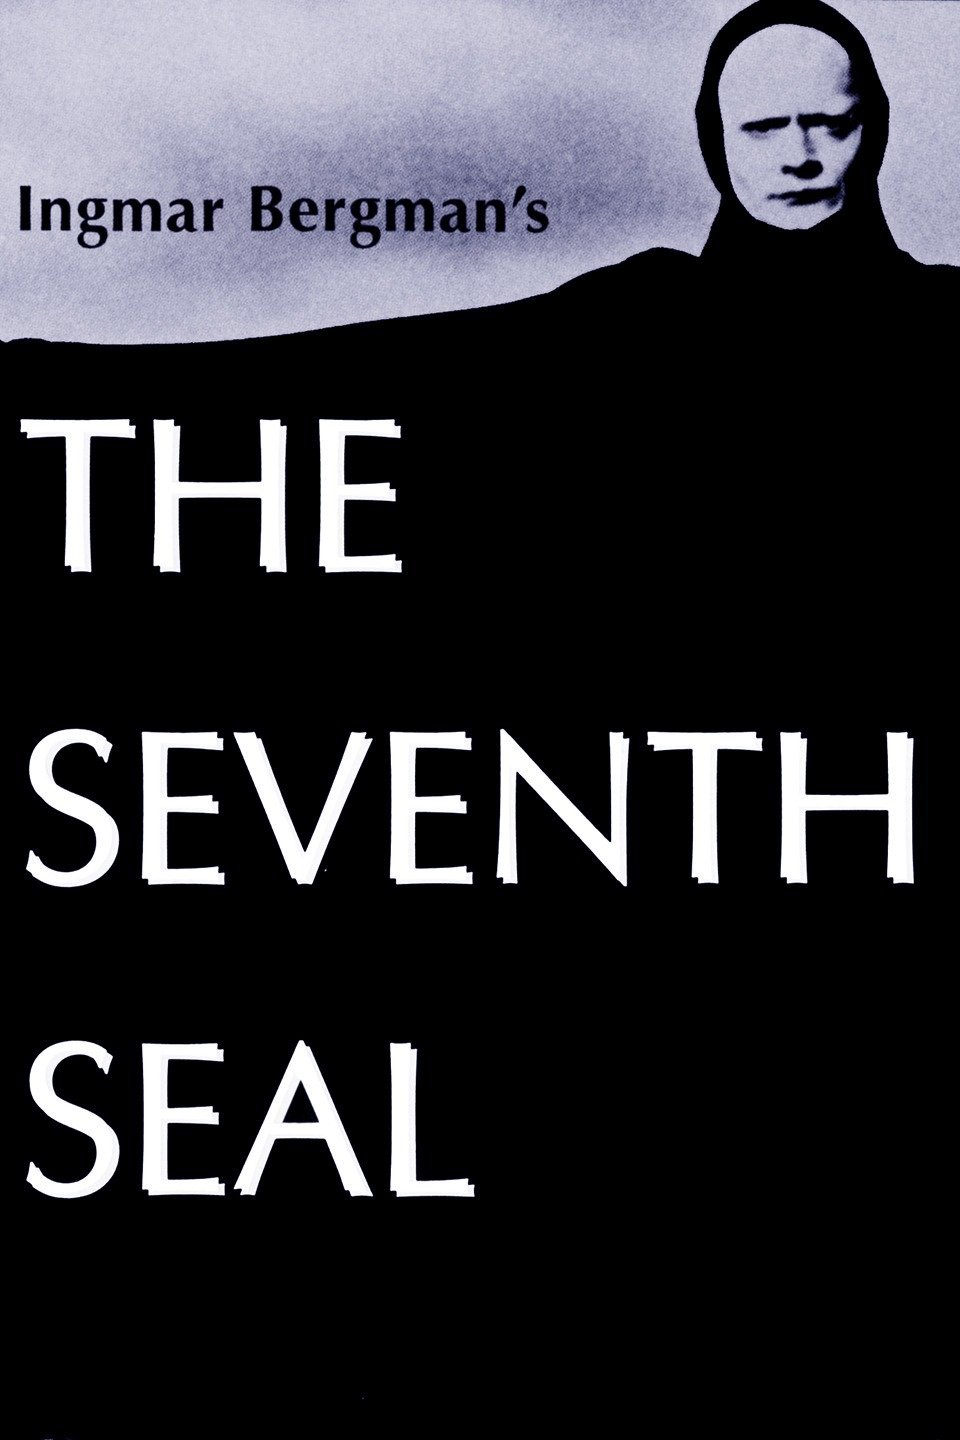 Pick of the Day 3/25: Ingmar Bergman's Seventh Seal